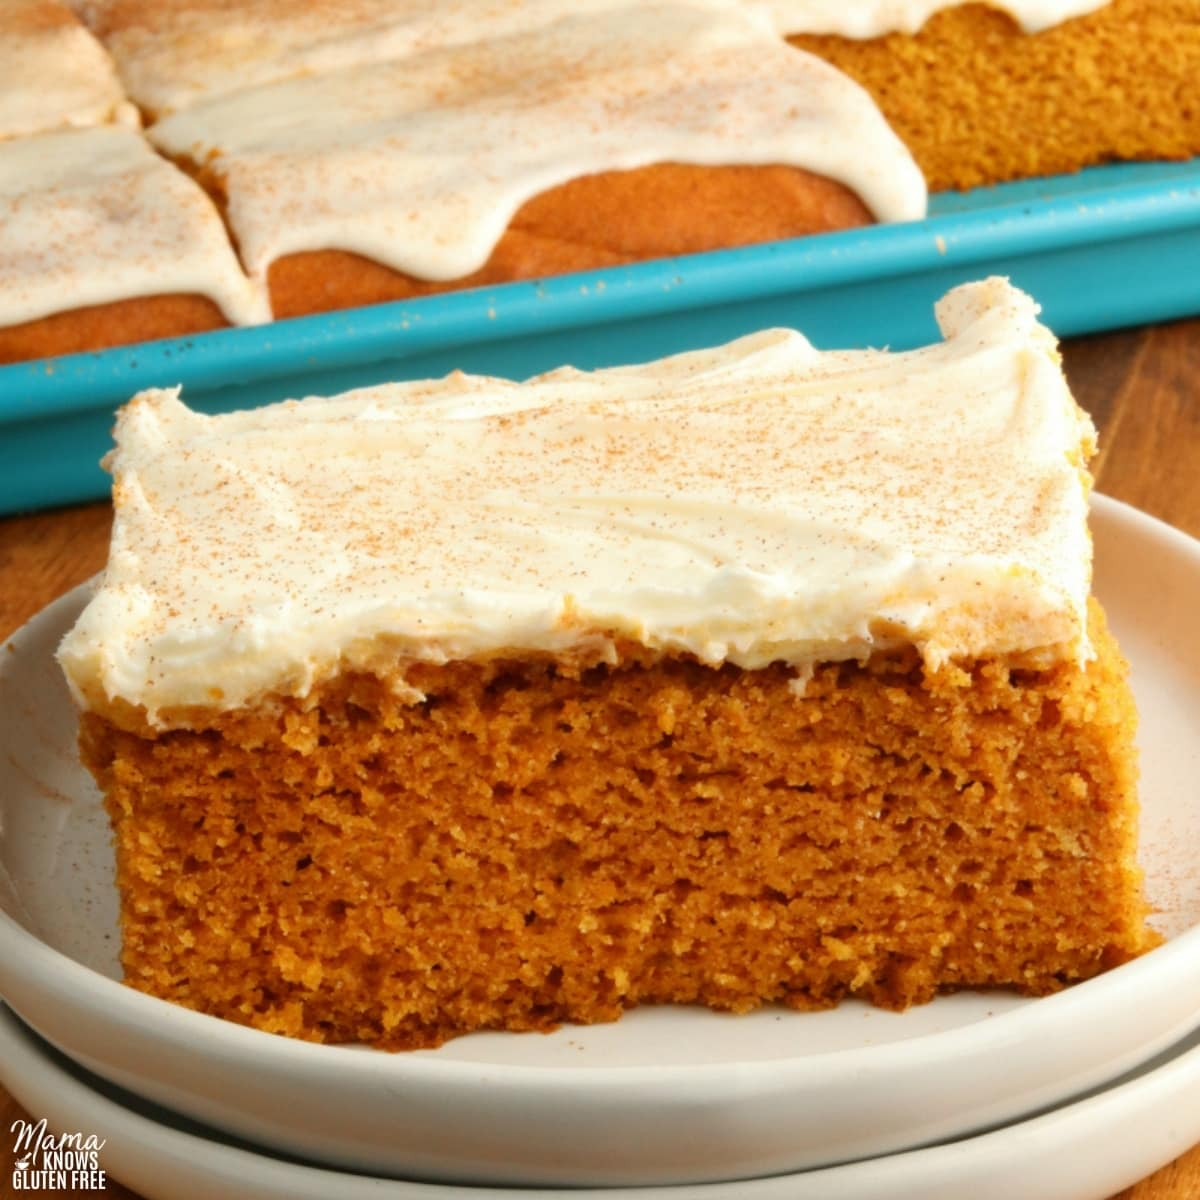 gluten-free pumpkin bar slice on a white plate with the bars in the background